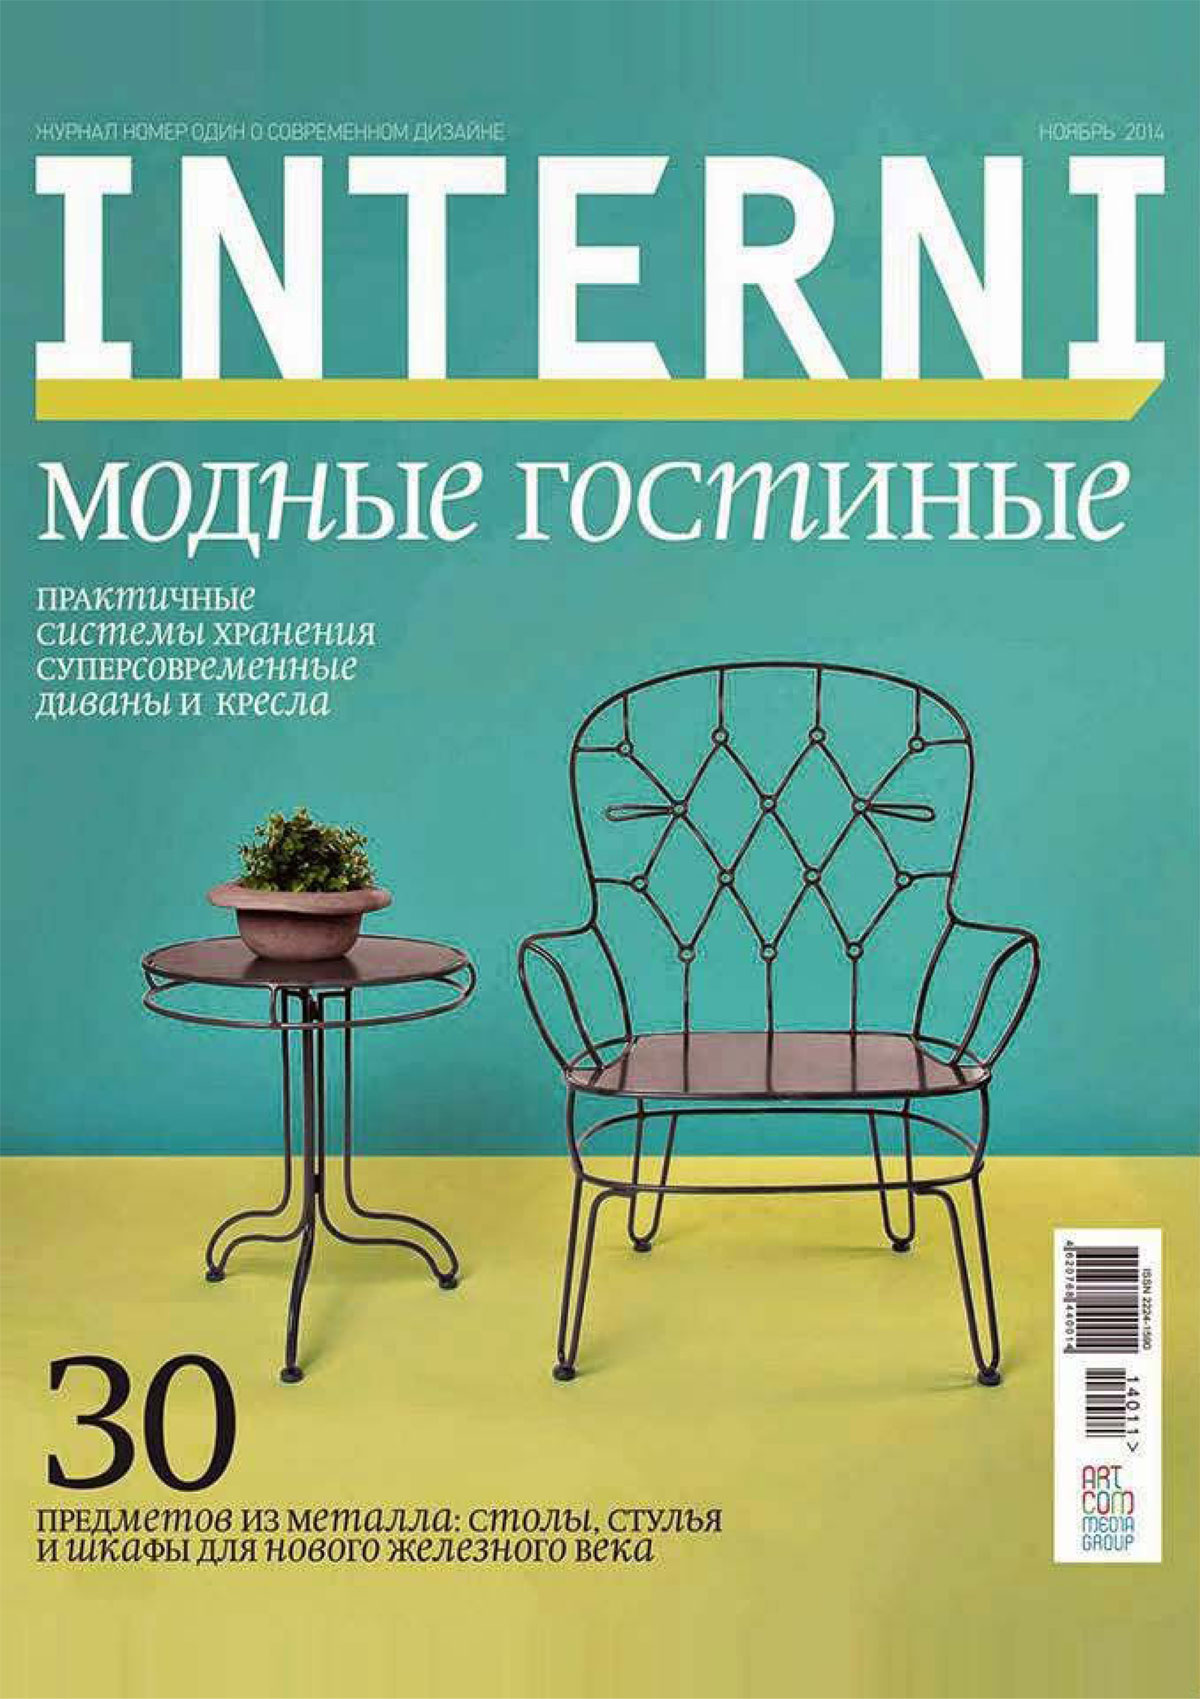 Interni Russia cover 2014